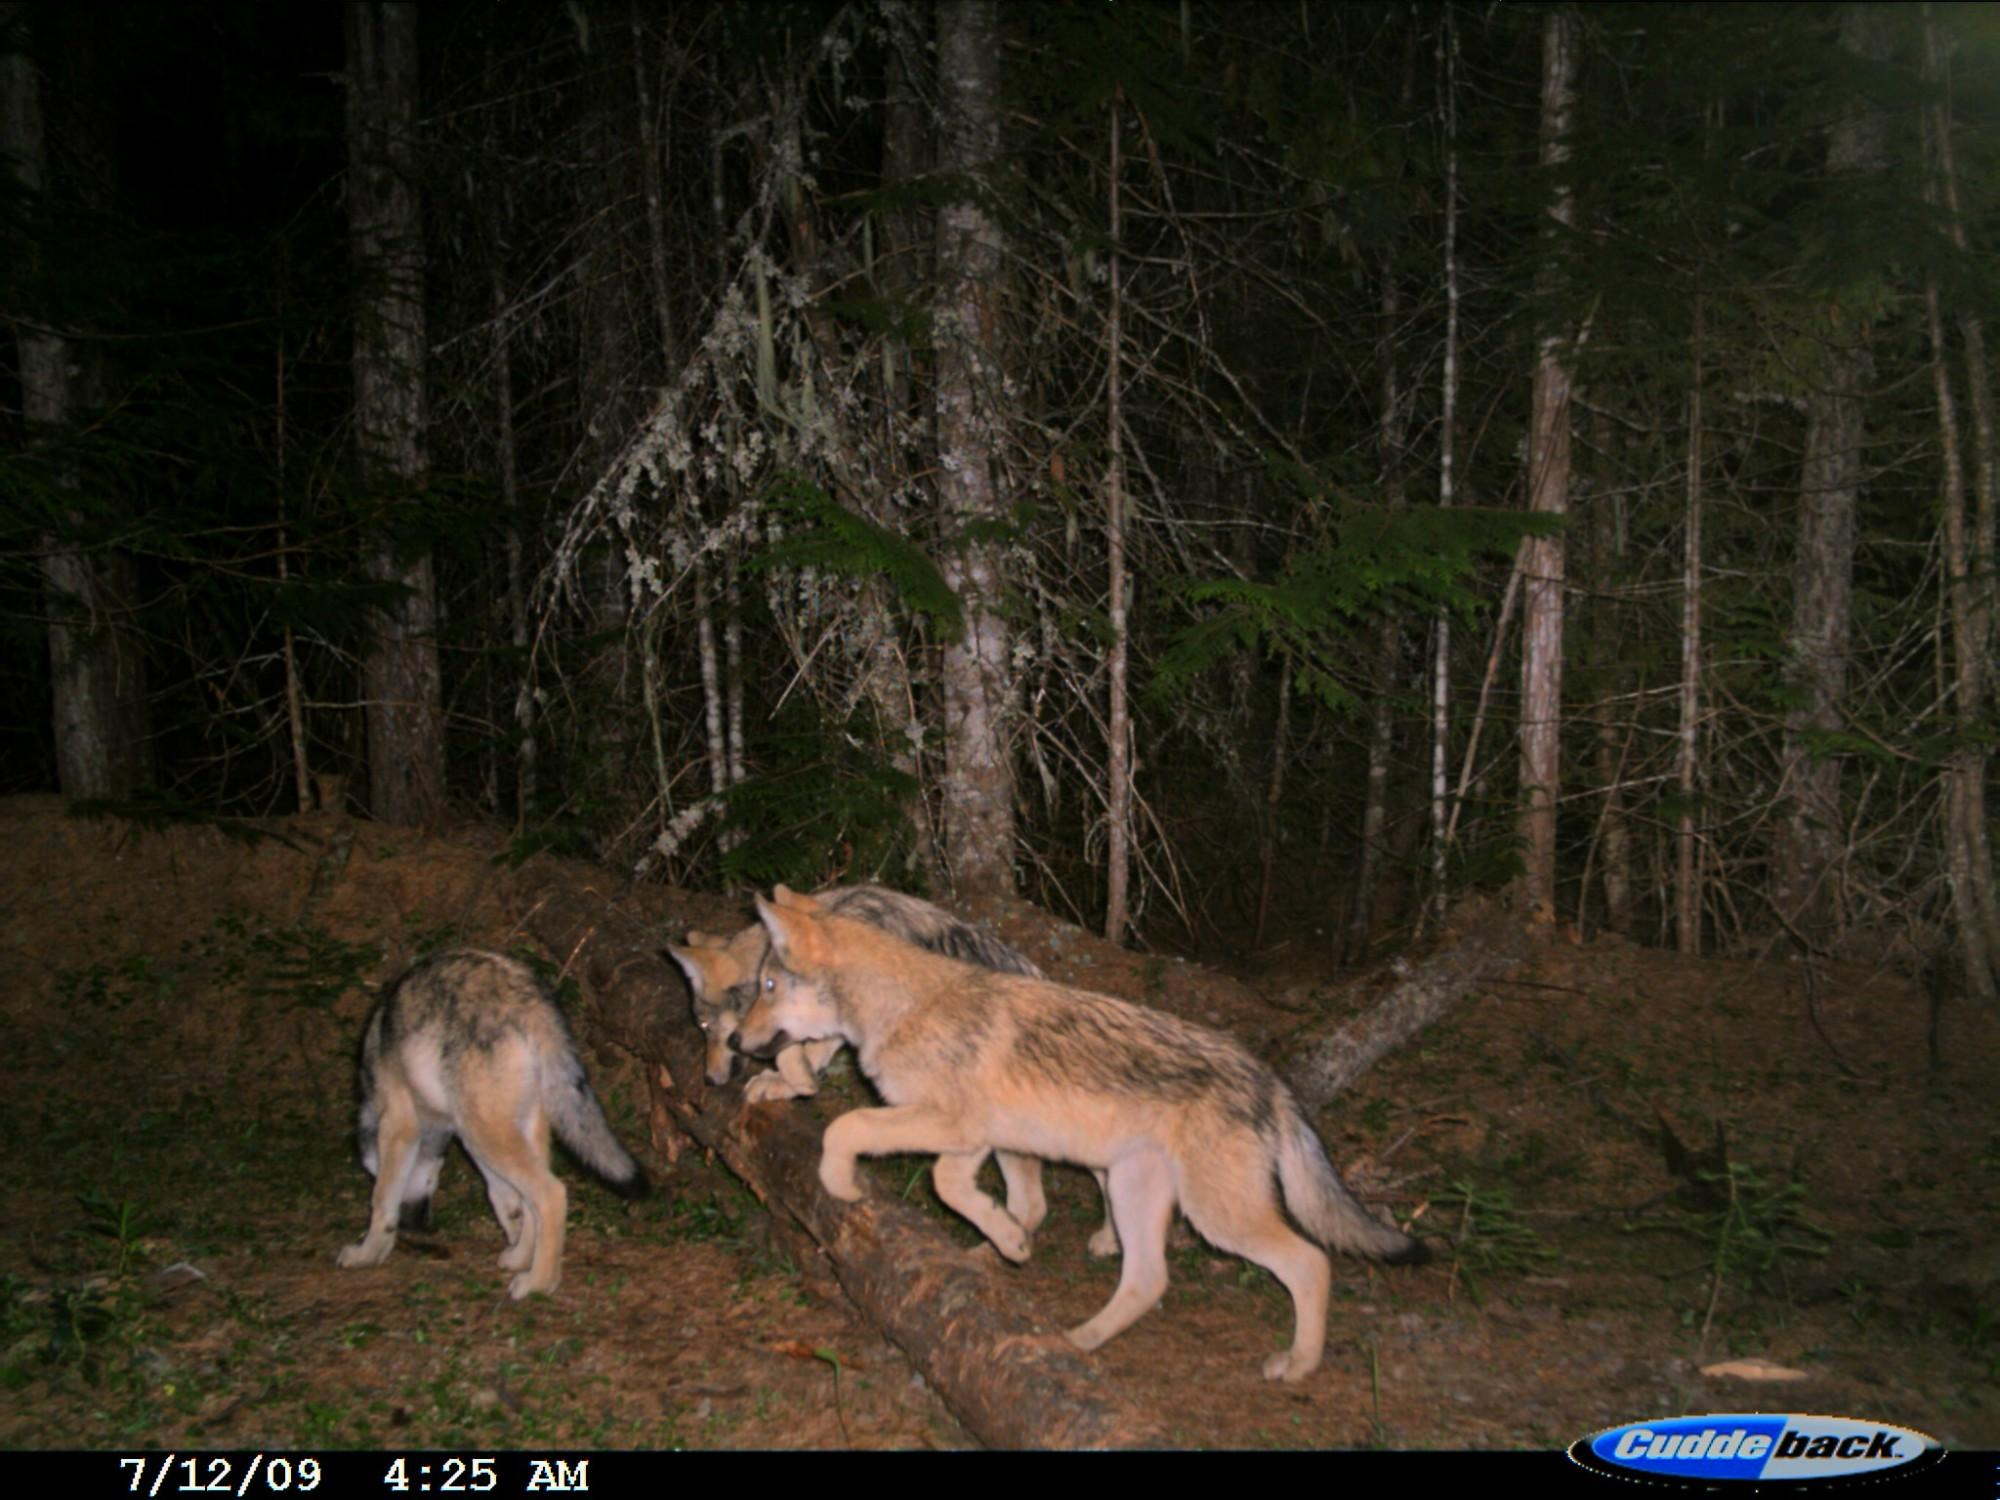 Wolf cubs are caught on a trail camera in Washington state in 2009. Washington's wolf population has grown from around only a dozen wolves in 2009 to 115 by 2016. As the state's population grew, ranchers became more familiar with wolves attacking their cattle and sheep.